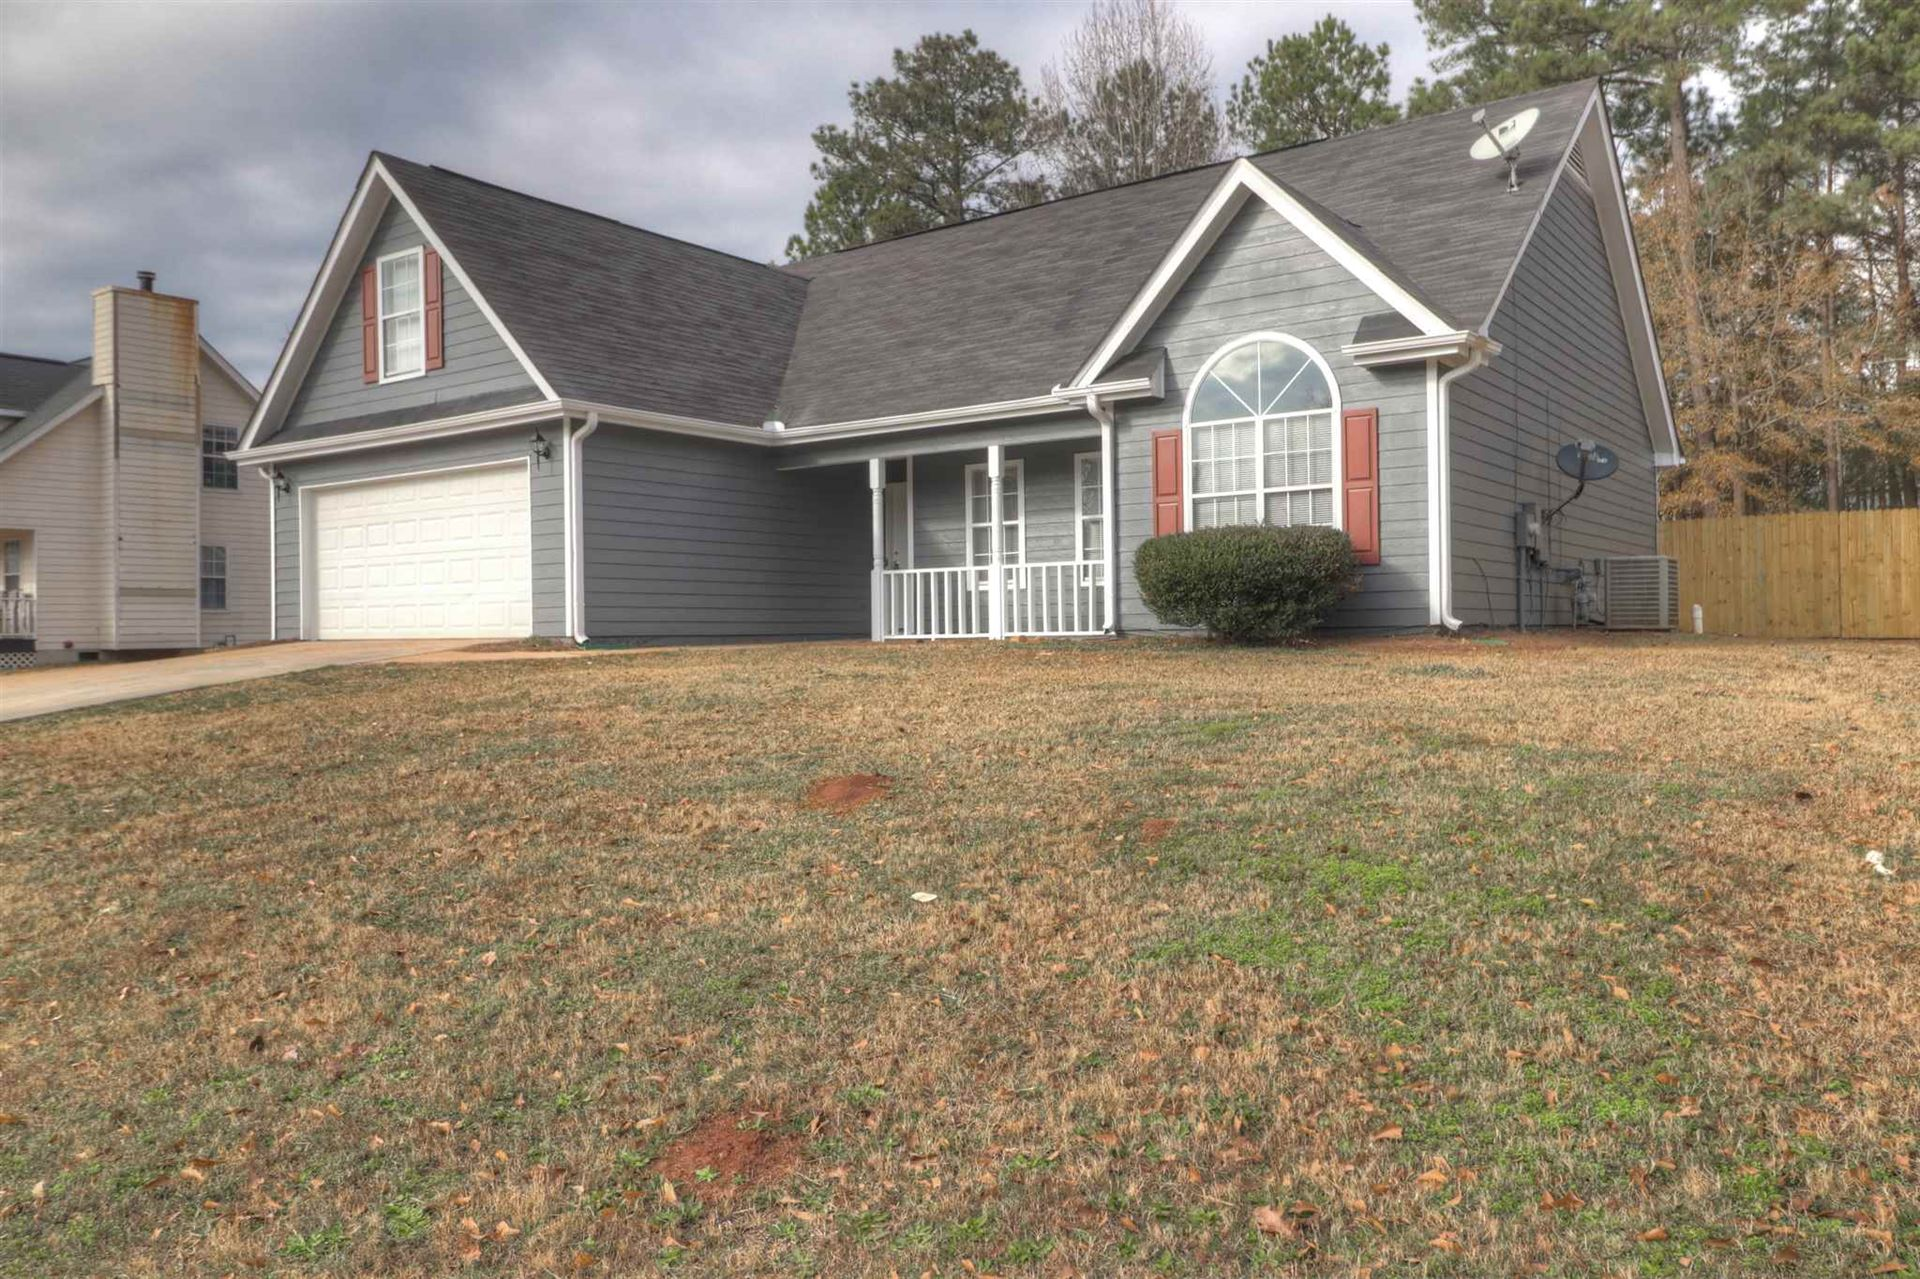 119 Chariot Dr, Griffin, GA 30224 - MLS#: 8835951